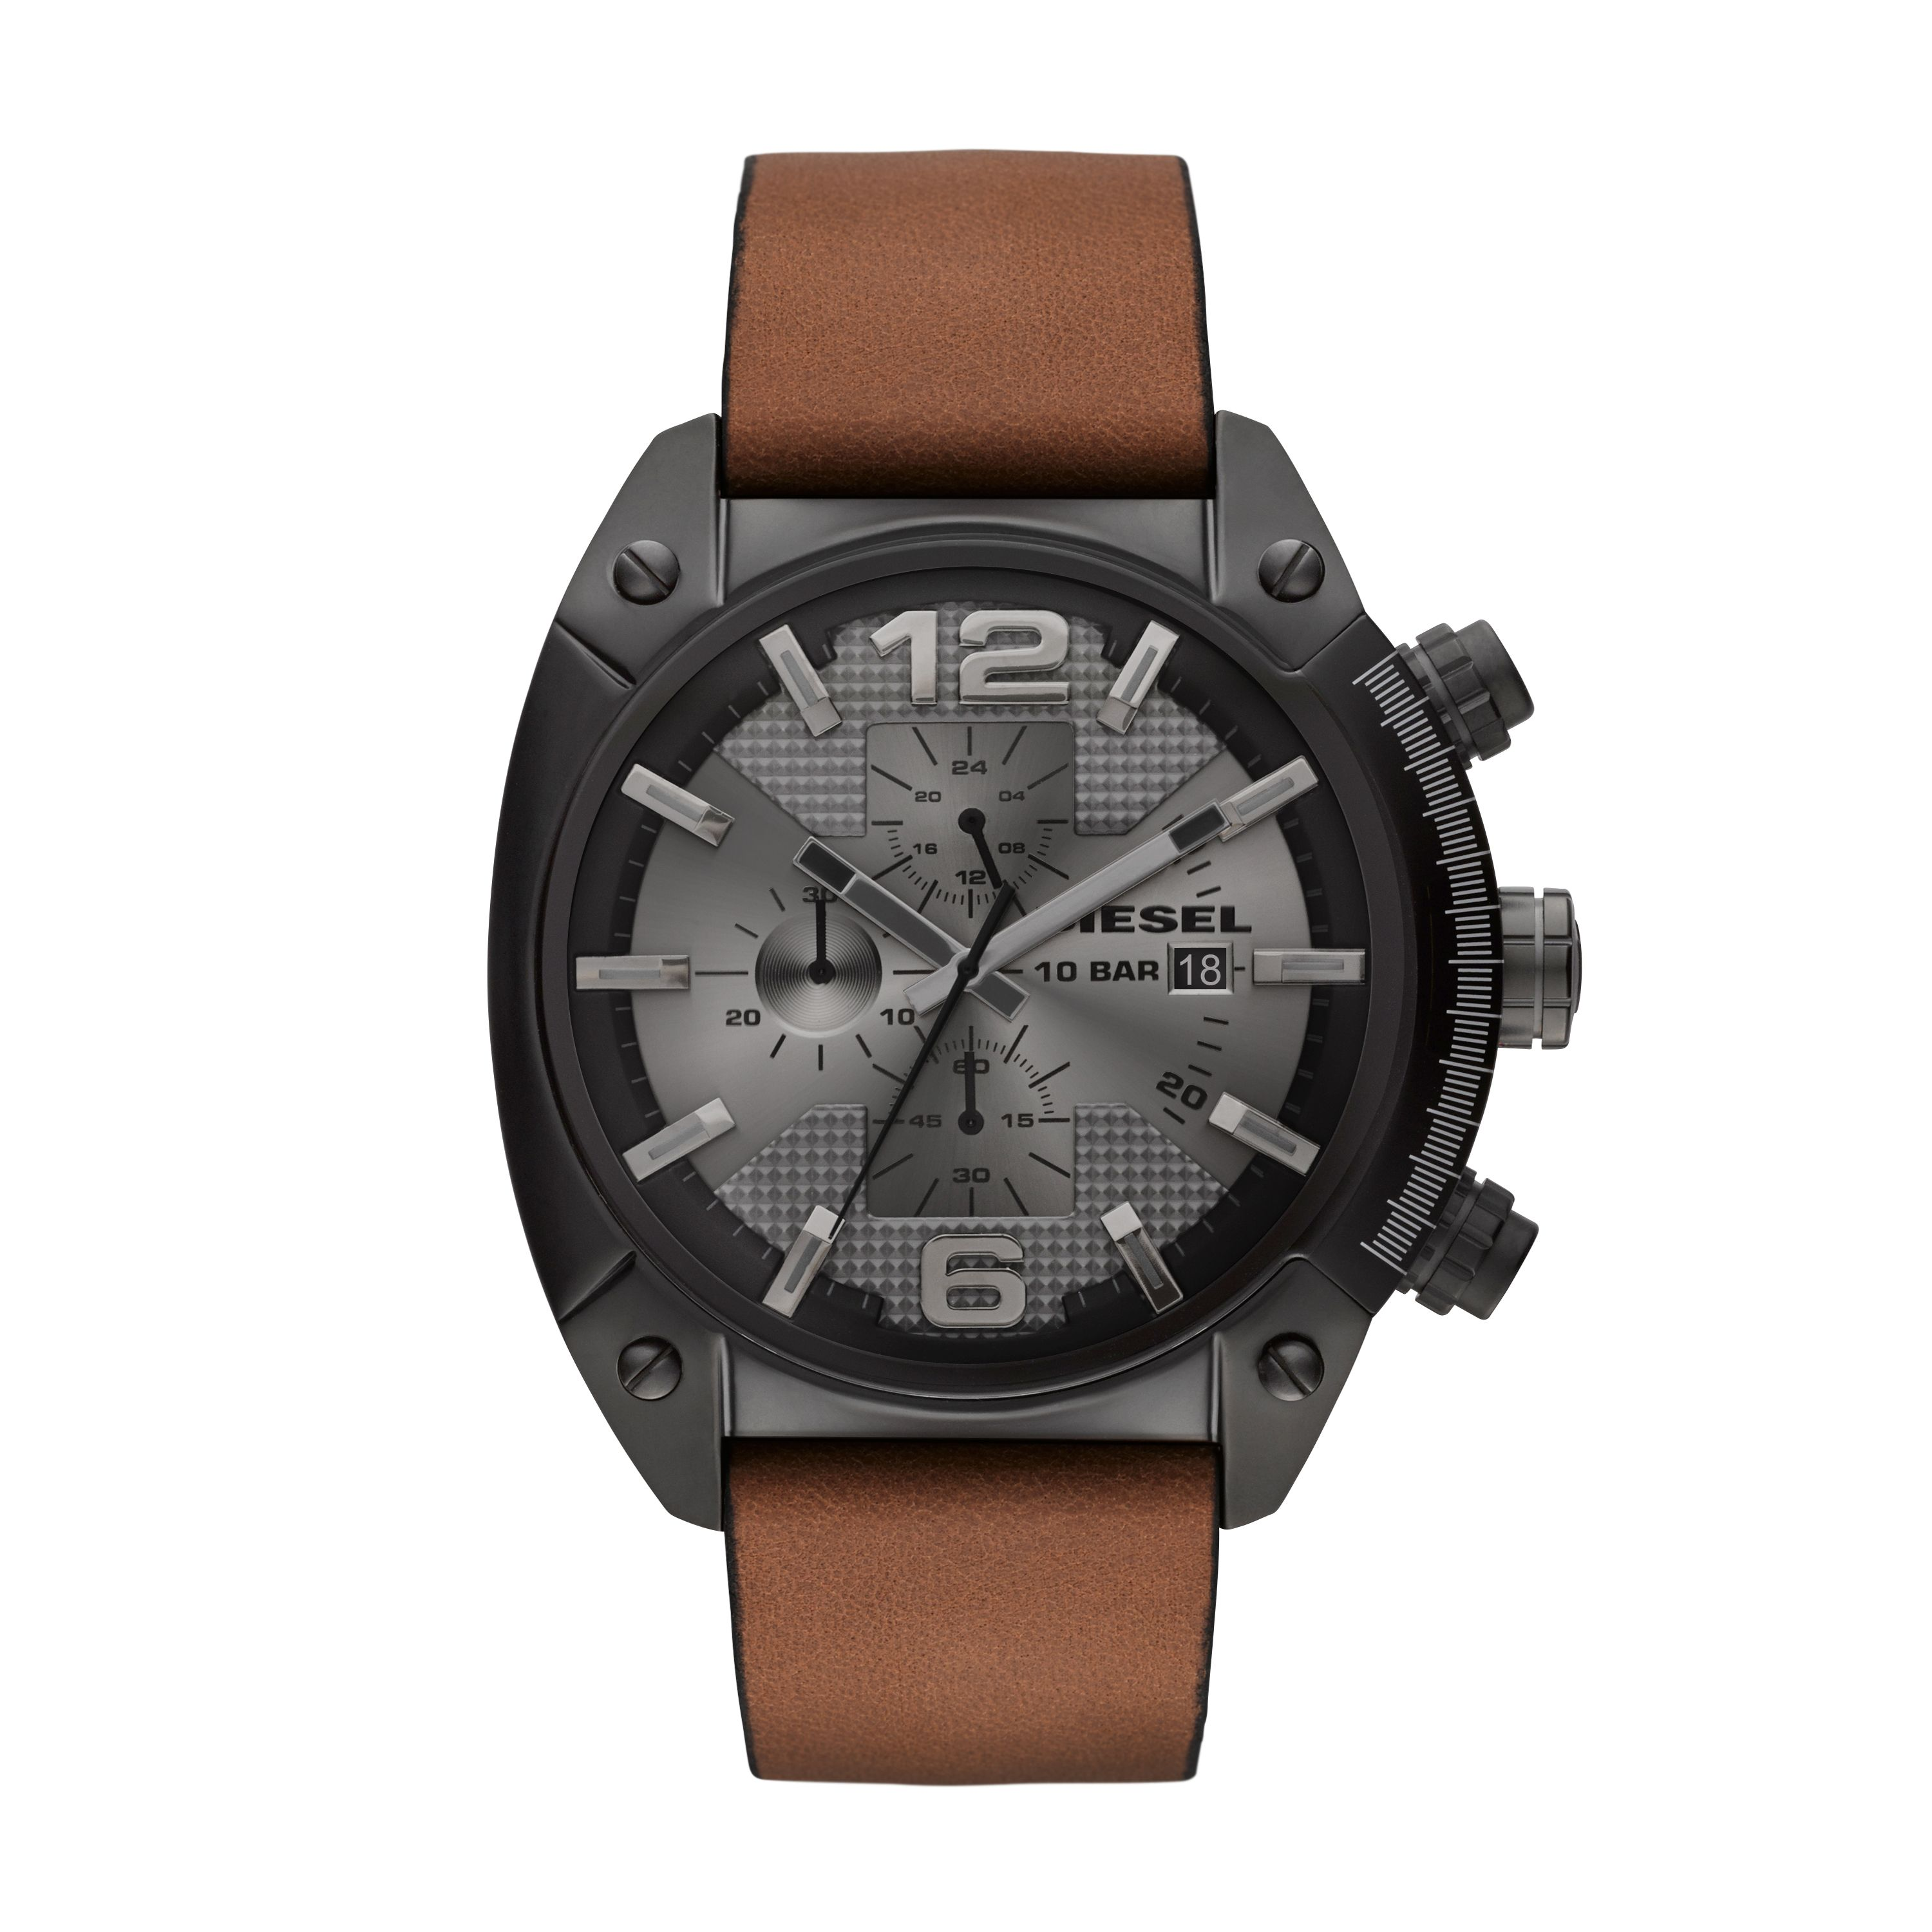 DZ4317 ADVANCED brown leather mens watch